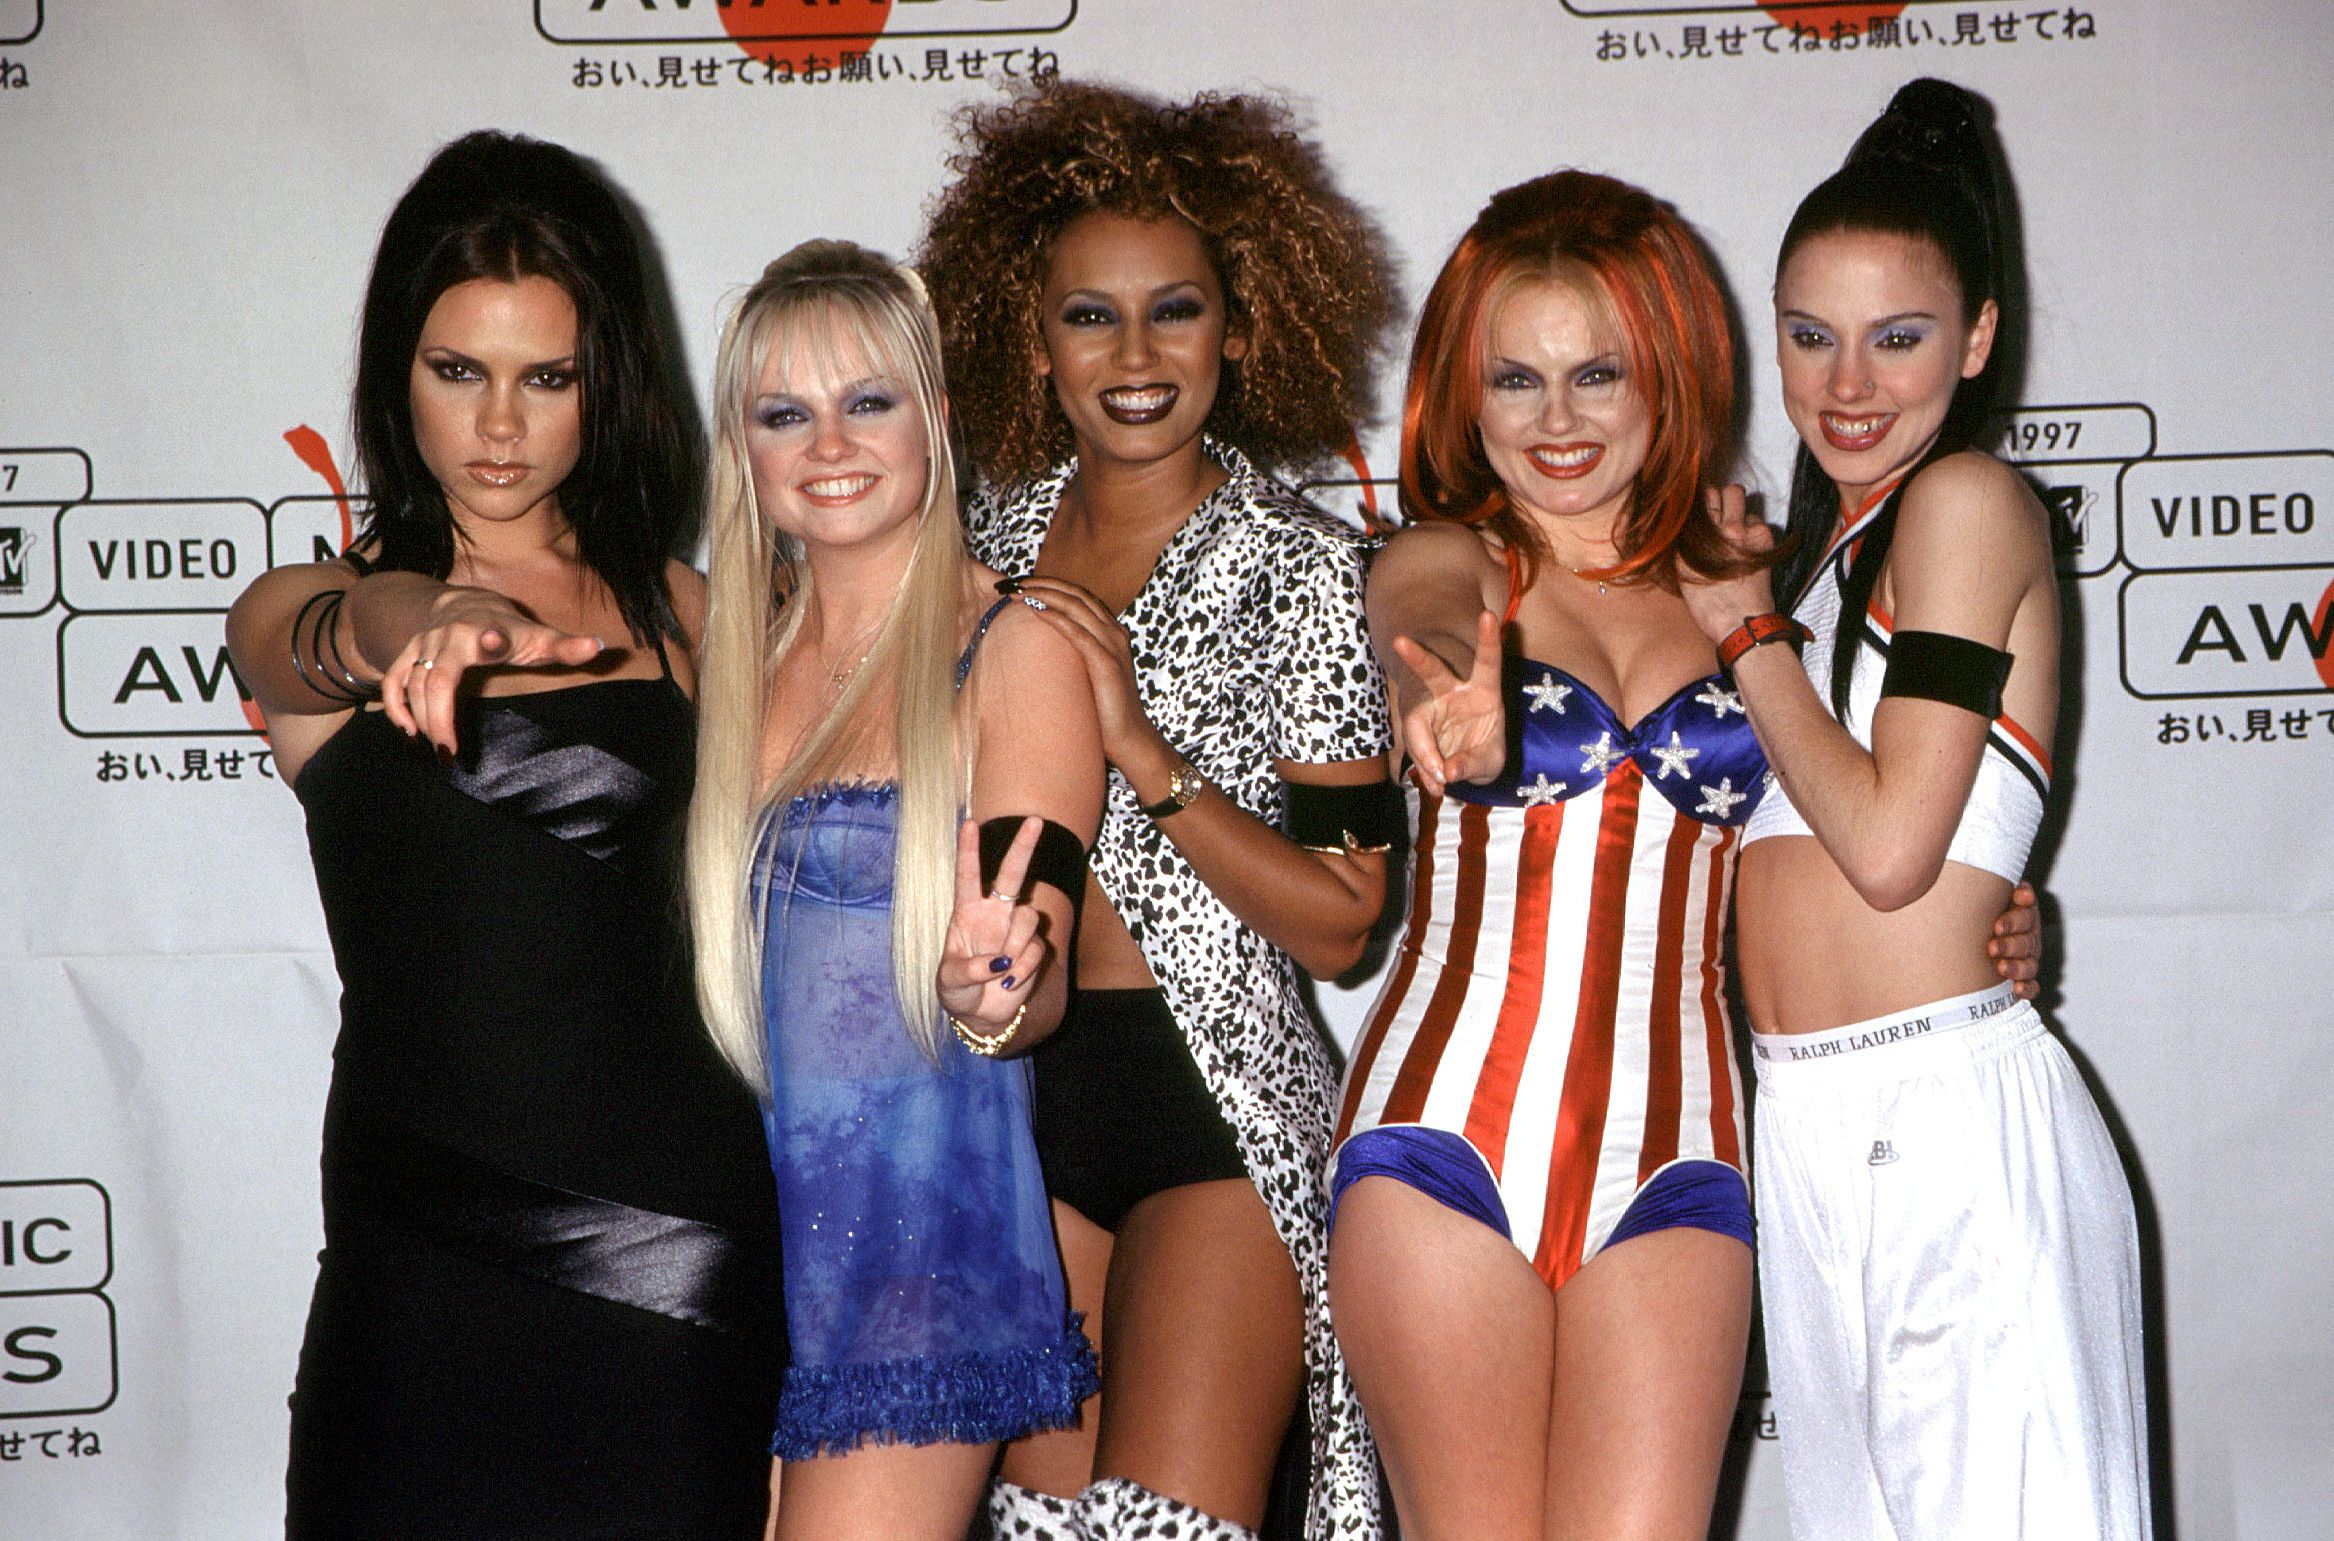 Halloween Costume Ideas For Girl Squads Girl Group